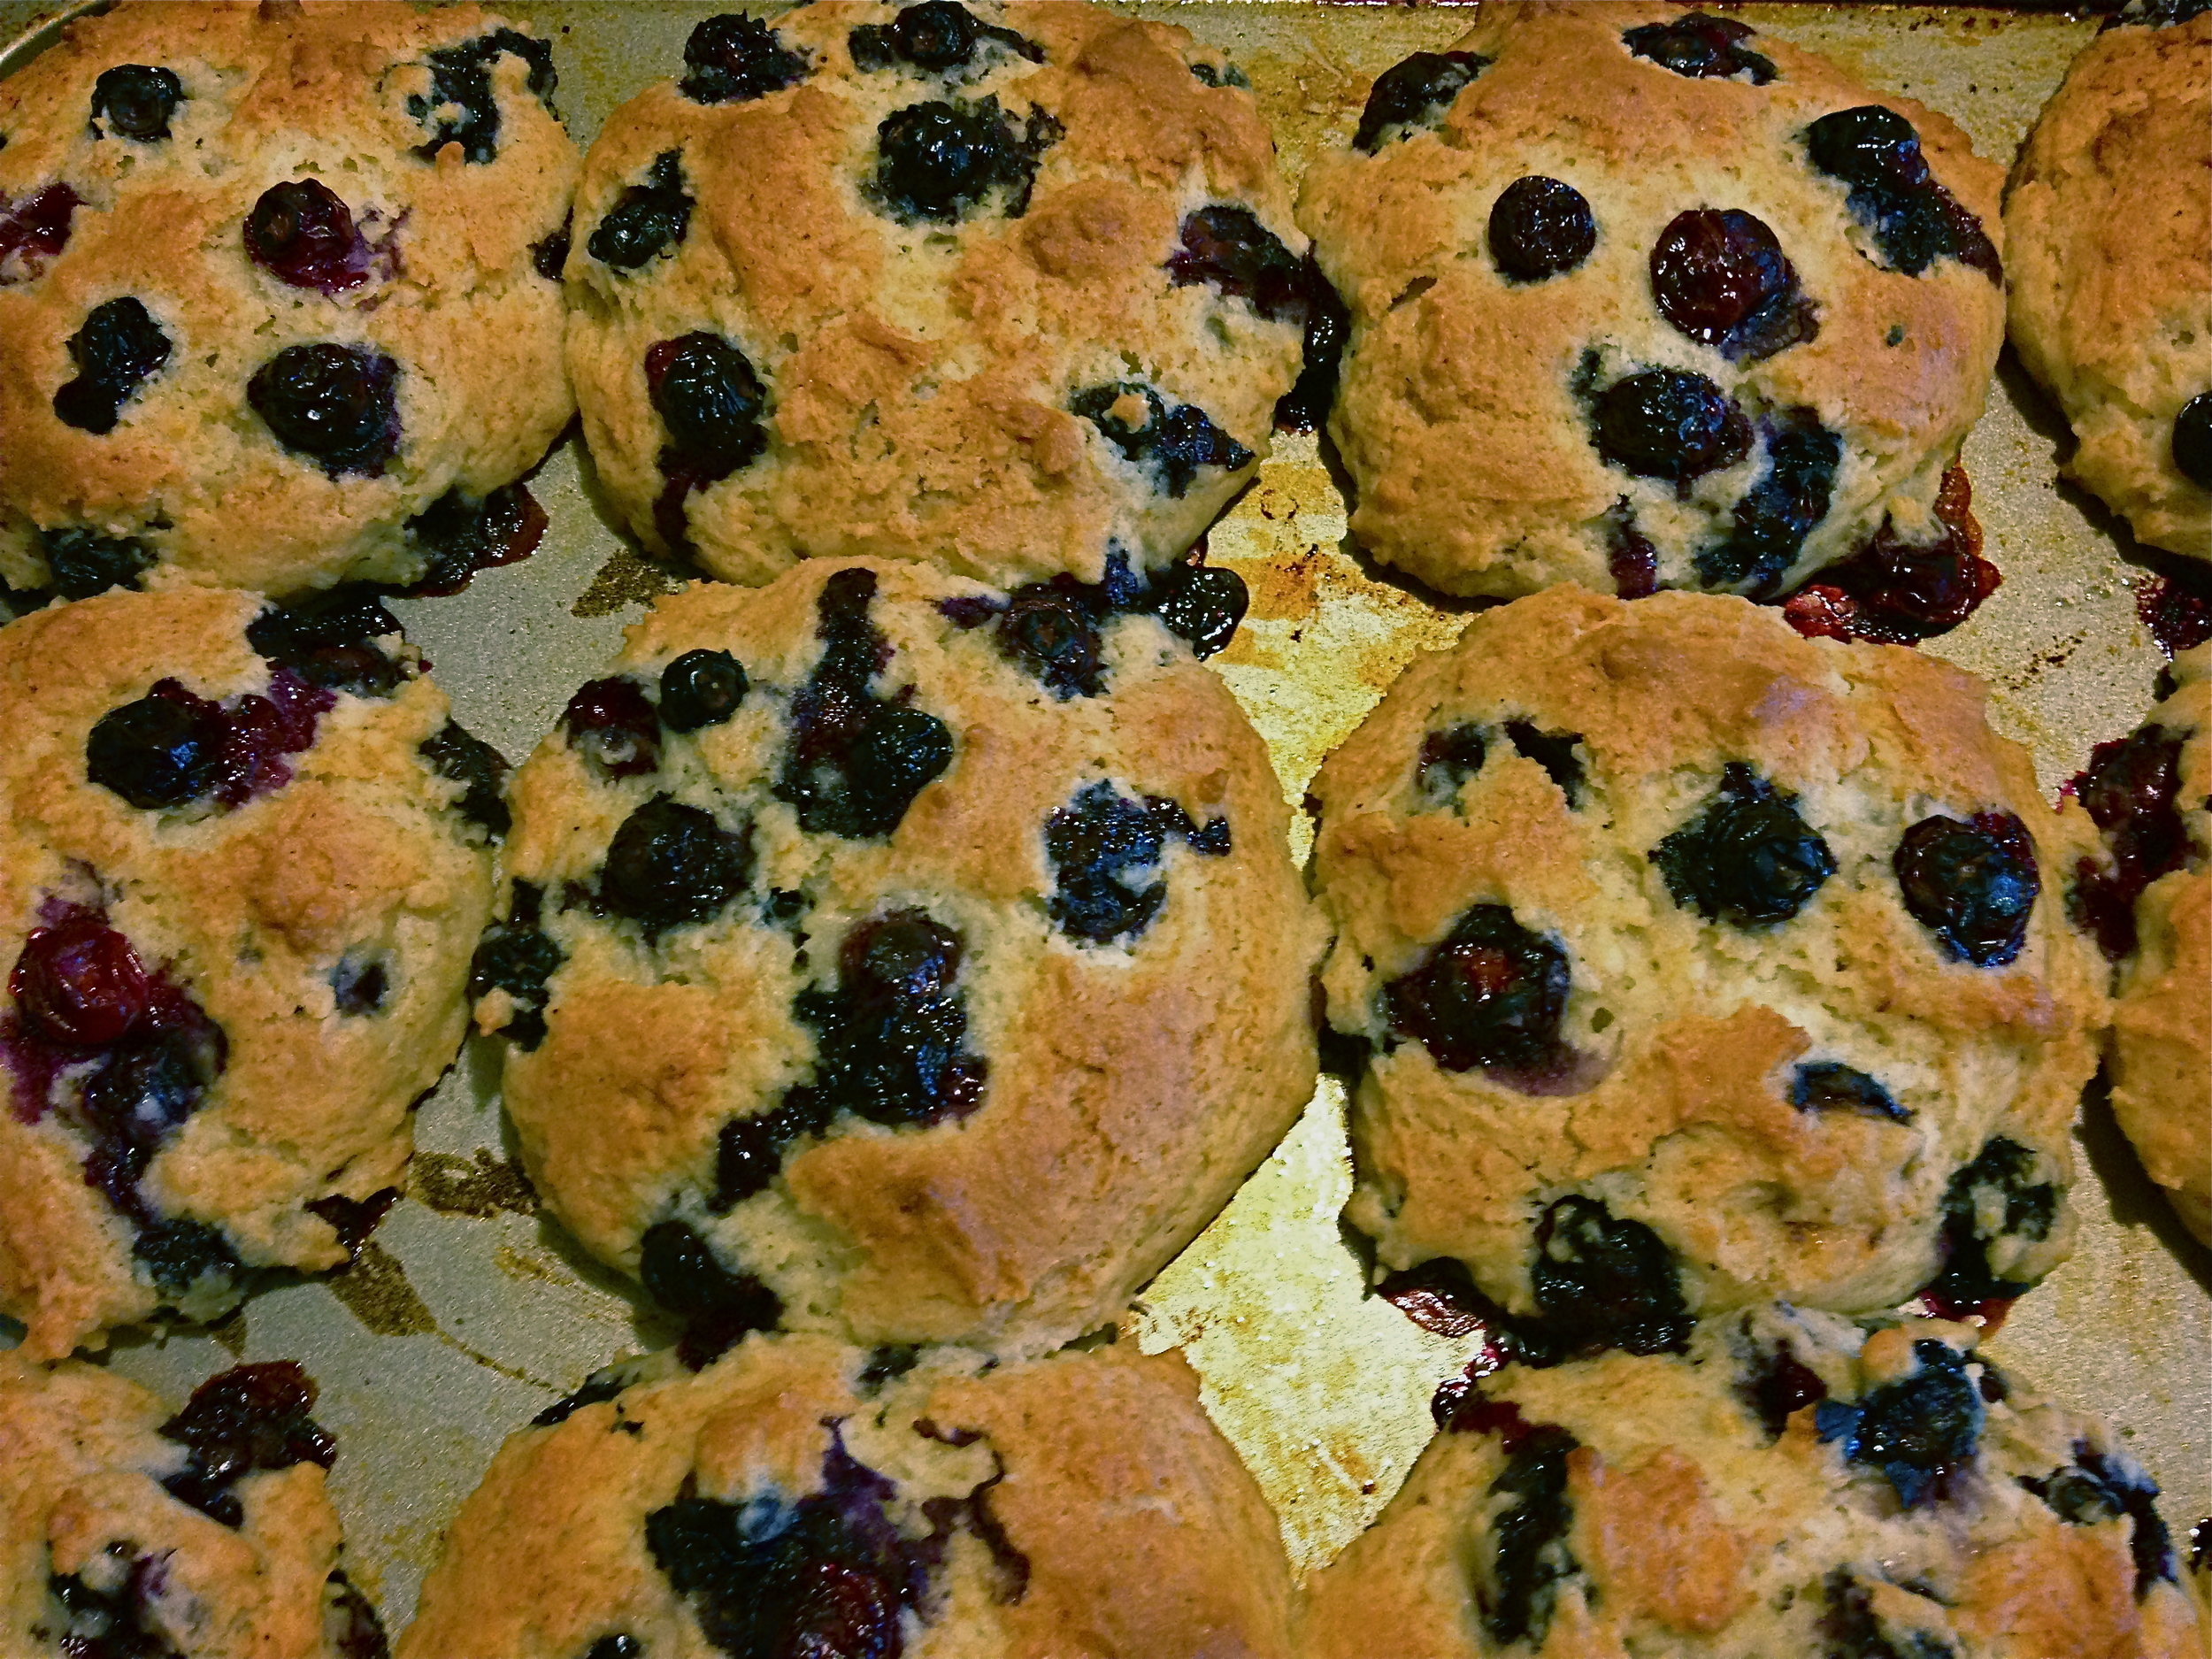 Finished product: Blueberry muffins